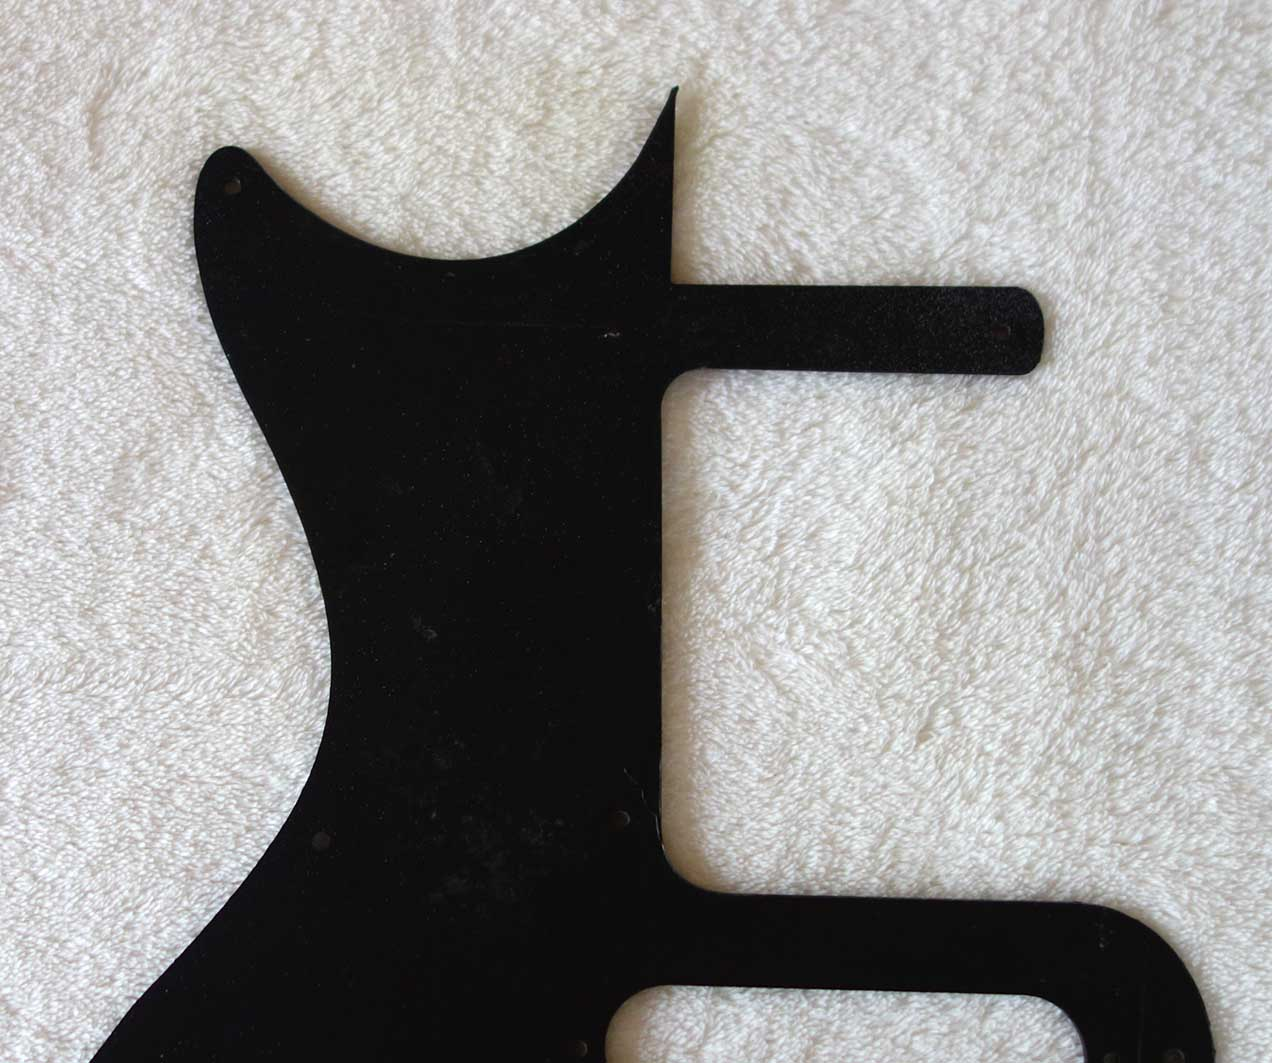 Aftermarket Gibson Melody Maker 1 PU Pickguard w/White Lettering for Vintage 1960-1963 MMs